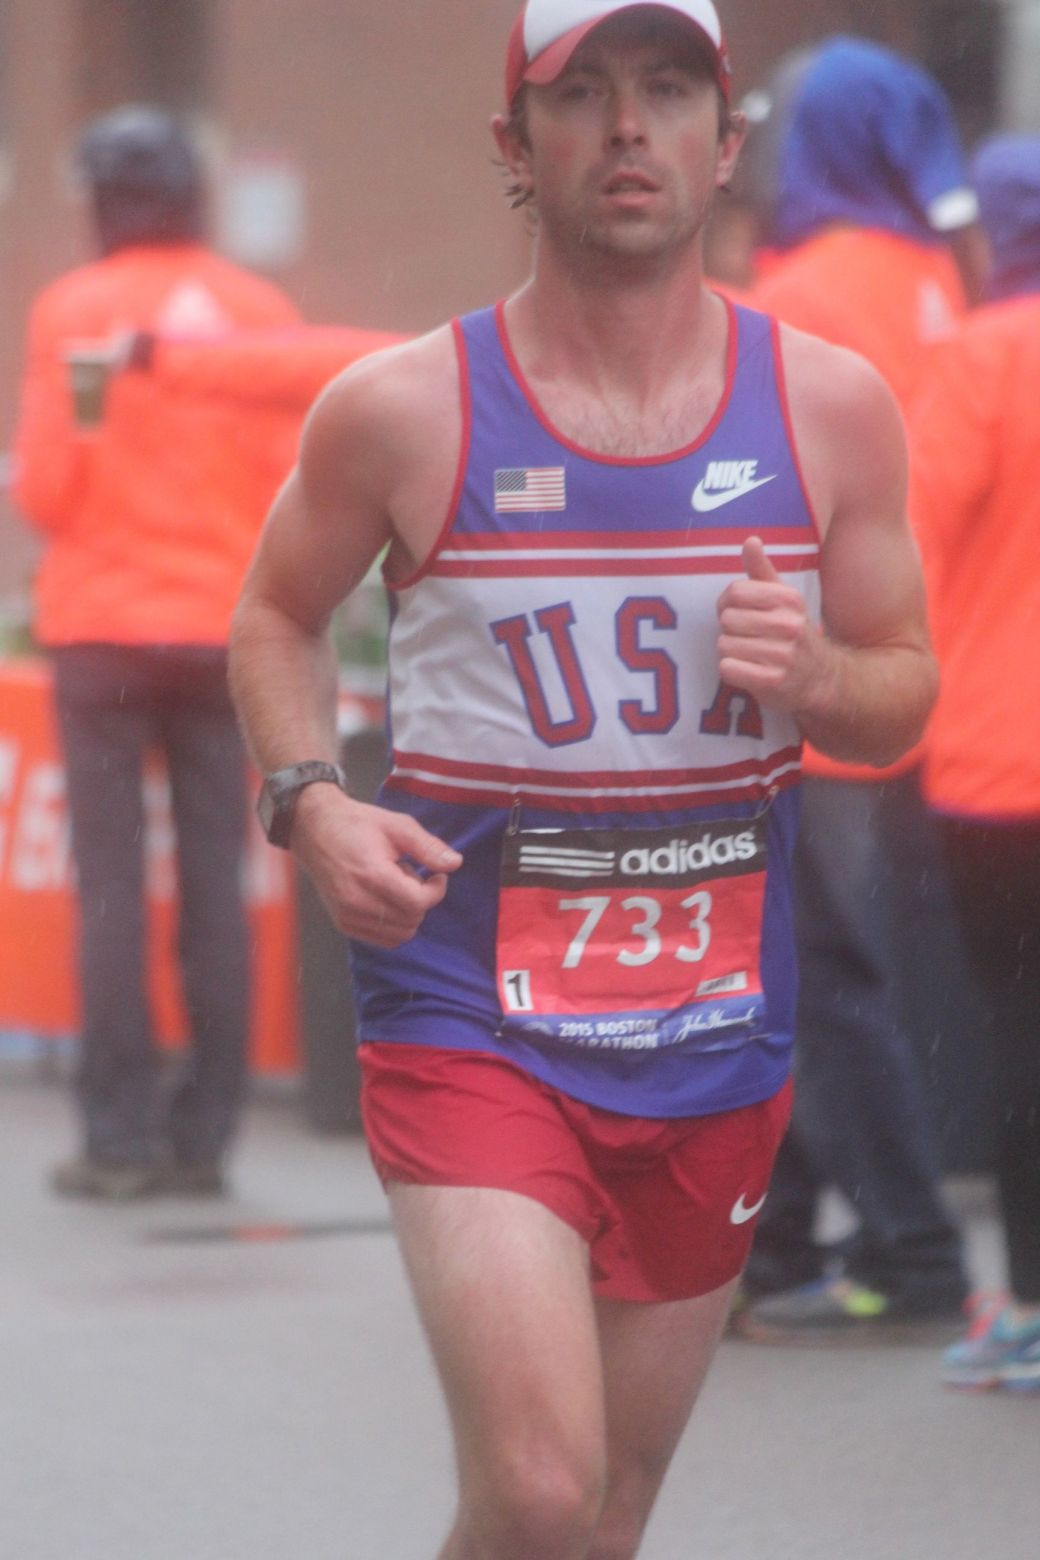 boston marathon april 20 2015 racer number 733